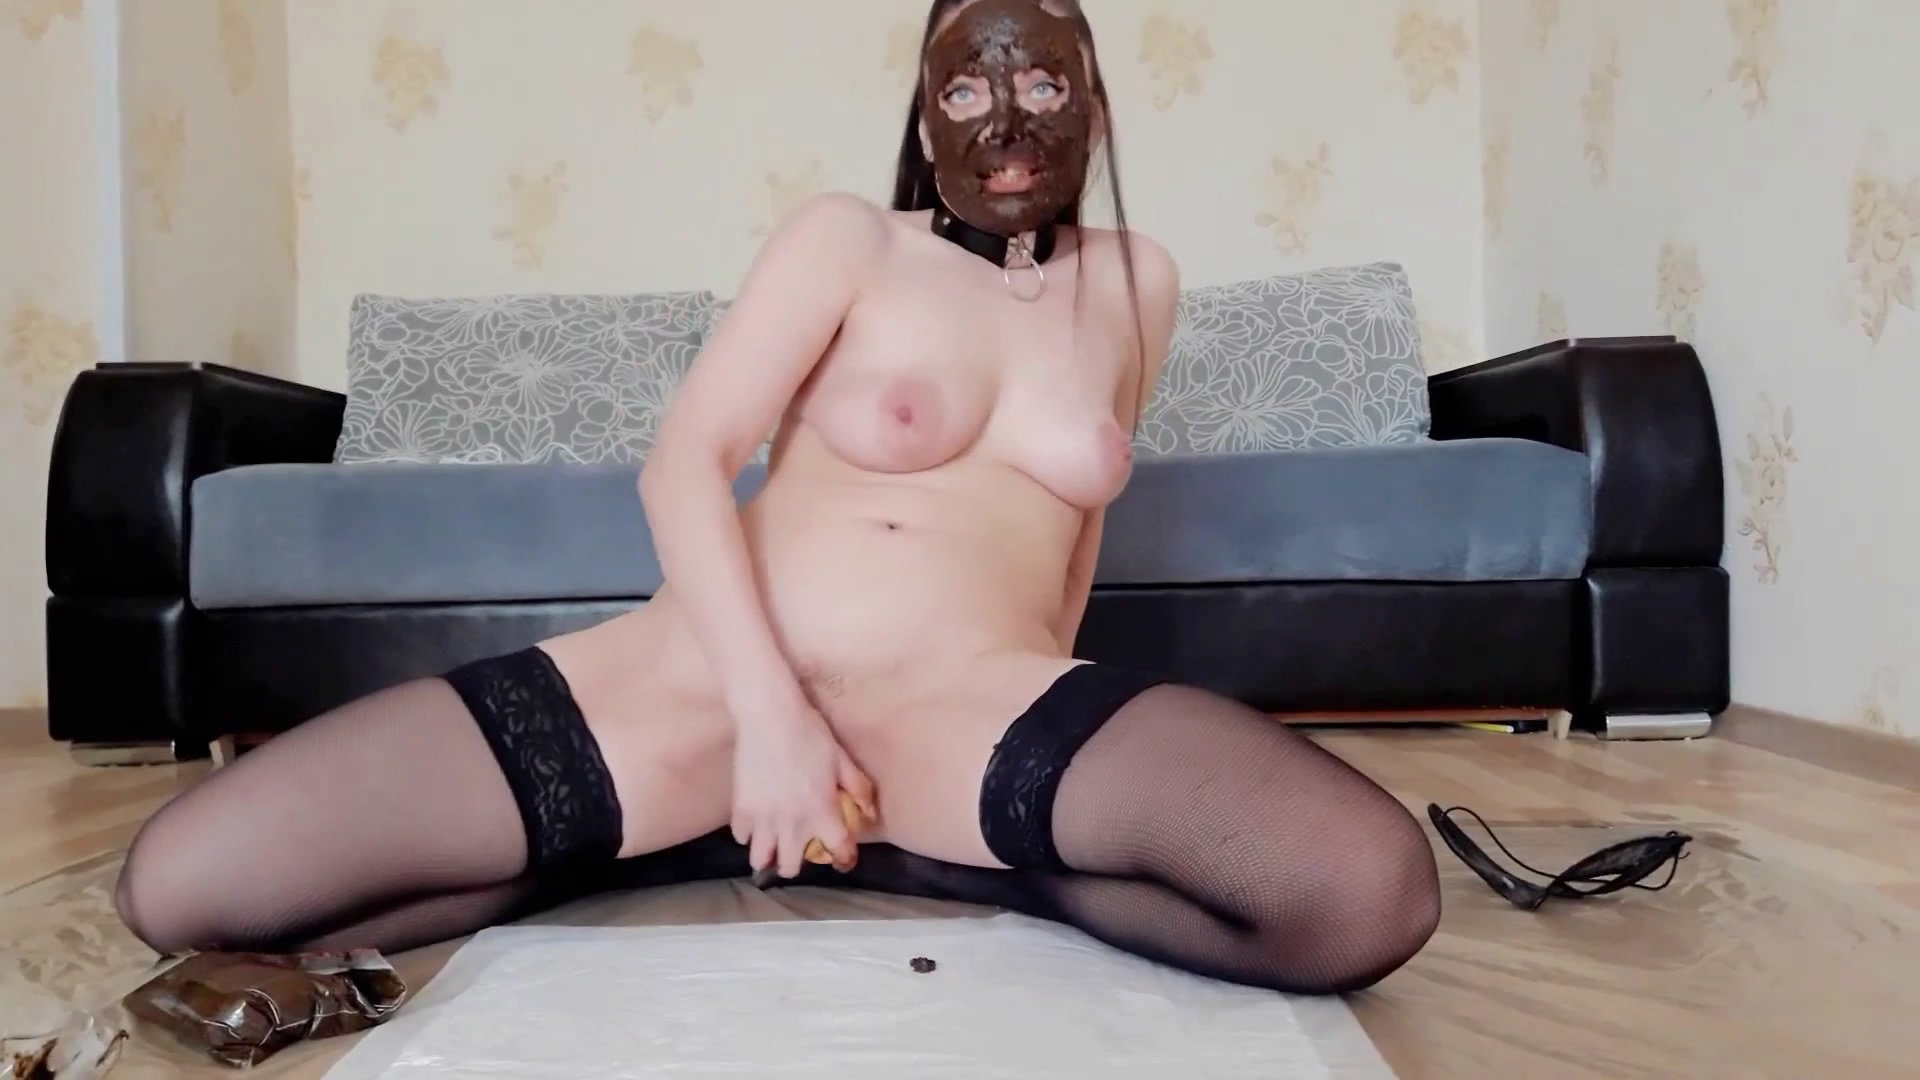 I shit from three holes with 8 loads part 1 starring in video ScatLina ($24.99 ScatShop) – Smearing